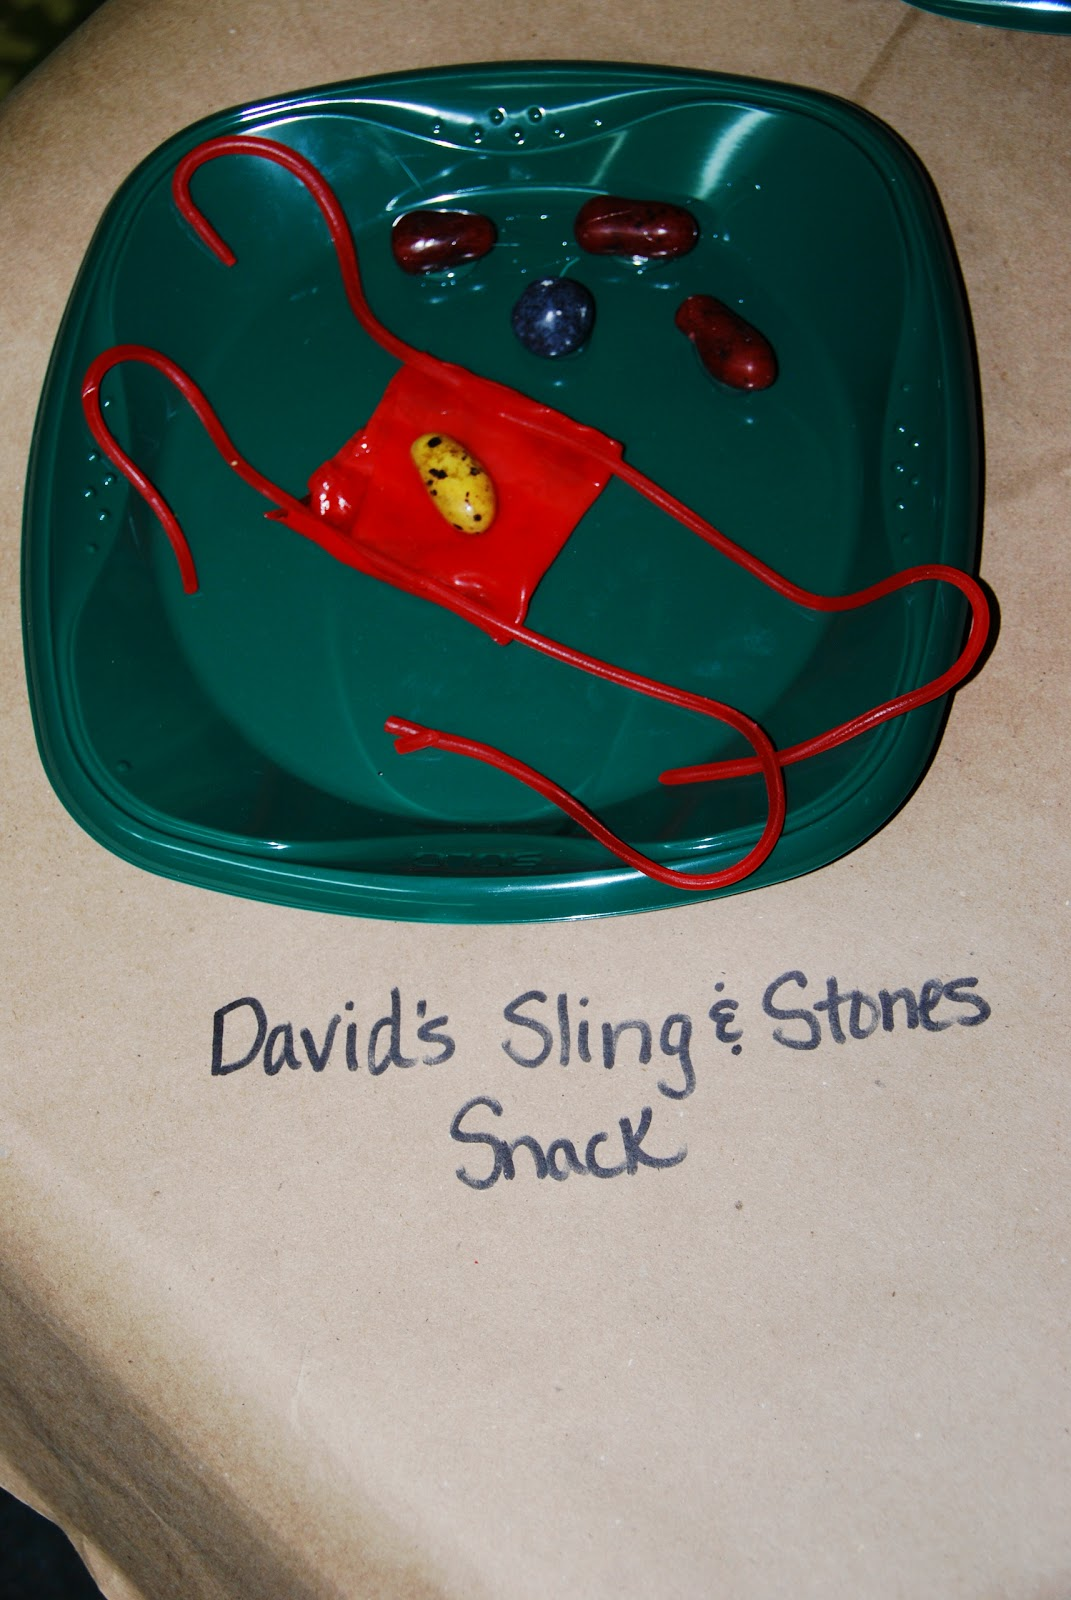 Life S A Bowl Of Cherries David S Sling Amp Stones Snack Craft